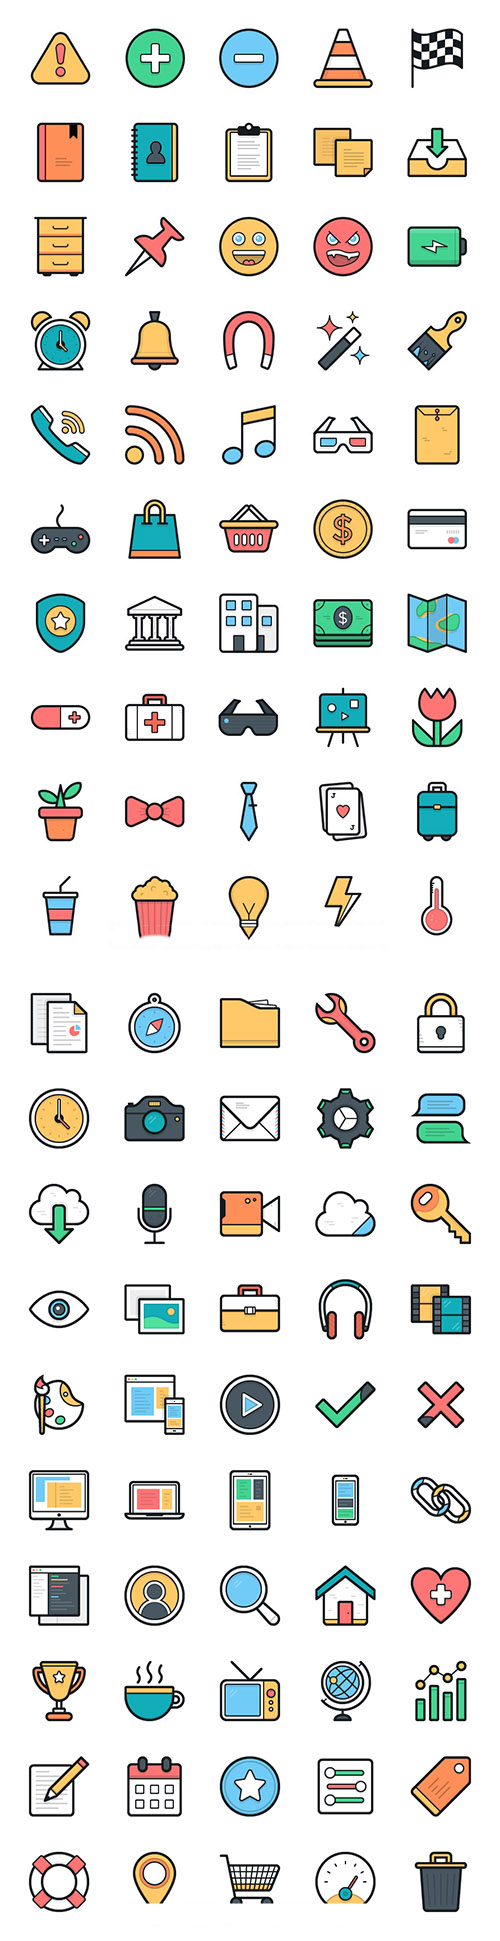 Ai, EPS, PNG Vectors Web Icons - Lulu Icons